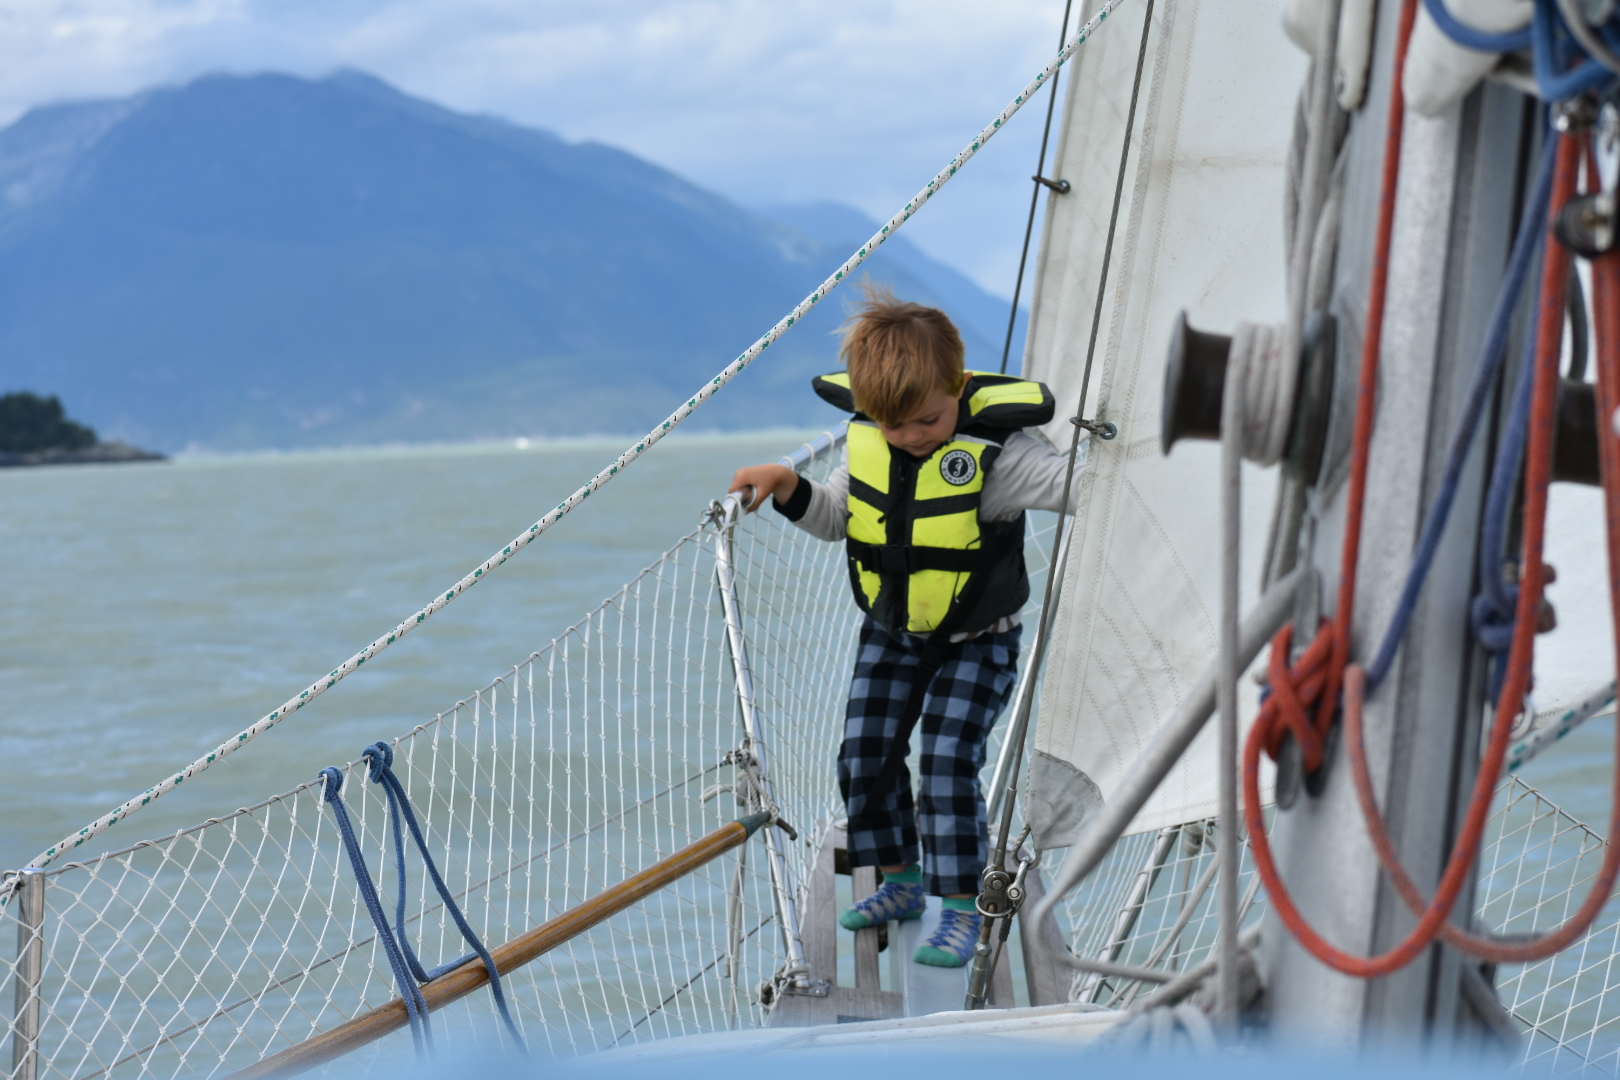 Exciting day in Lynn Canal.